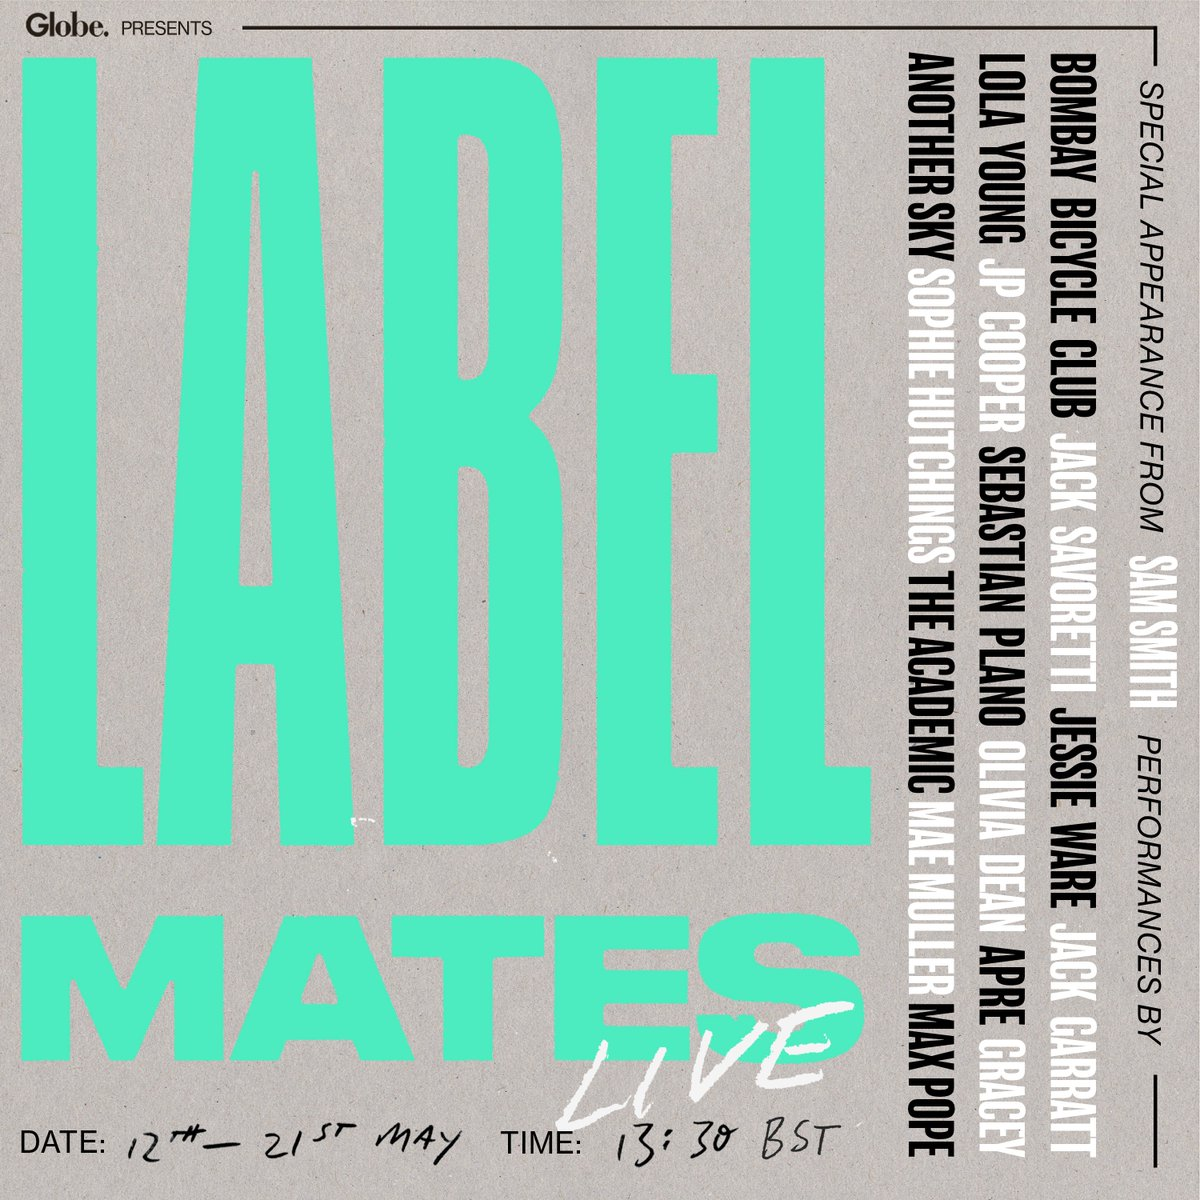 Check out @UMusicGlobeUK's LabelMates lineup! Weekdays between 12th-21st May, watch as @samsmith @JessieWare @JackSavoretti @sebastianplano @BombayBicycle @nickmulveymusic & @polydorrecords headliner still to come introduce their LabelMates!👀🎉 https://t.co/ybeZbJZWsM